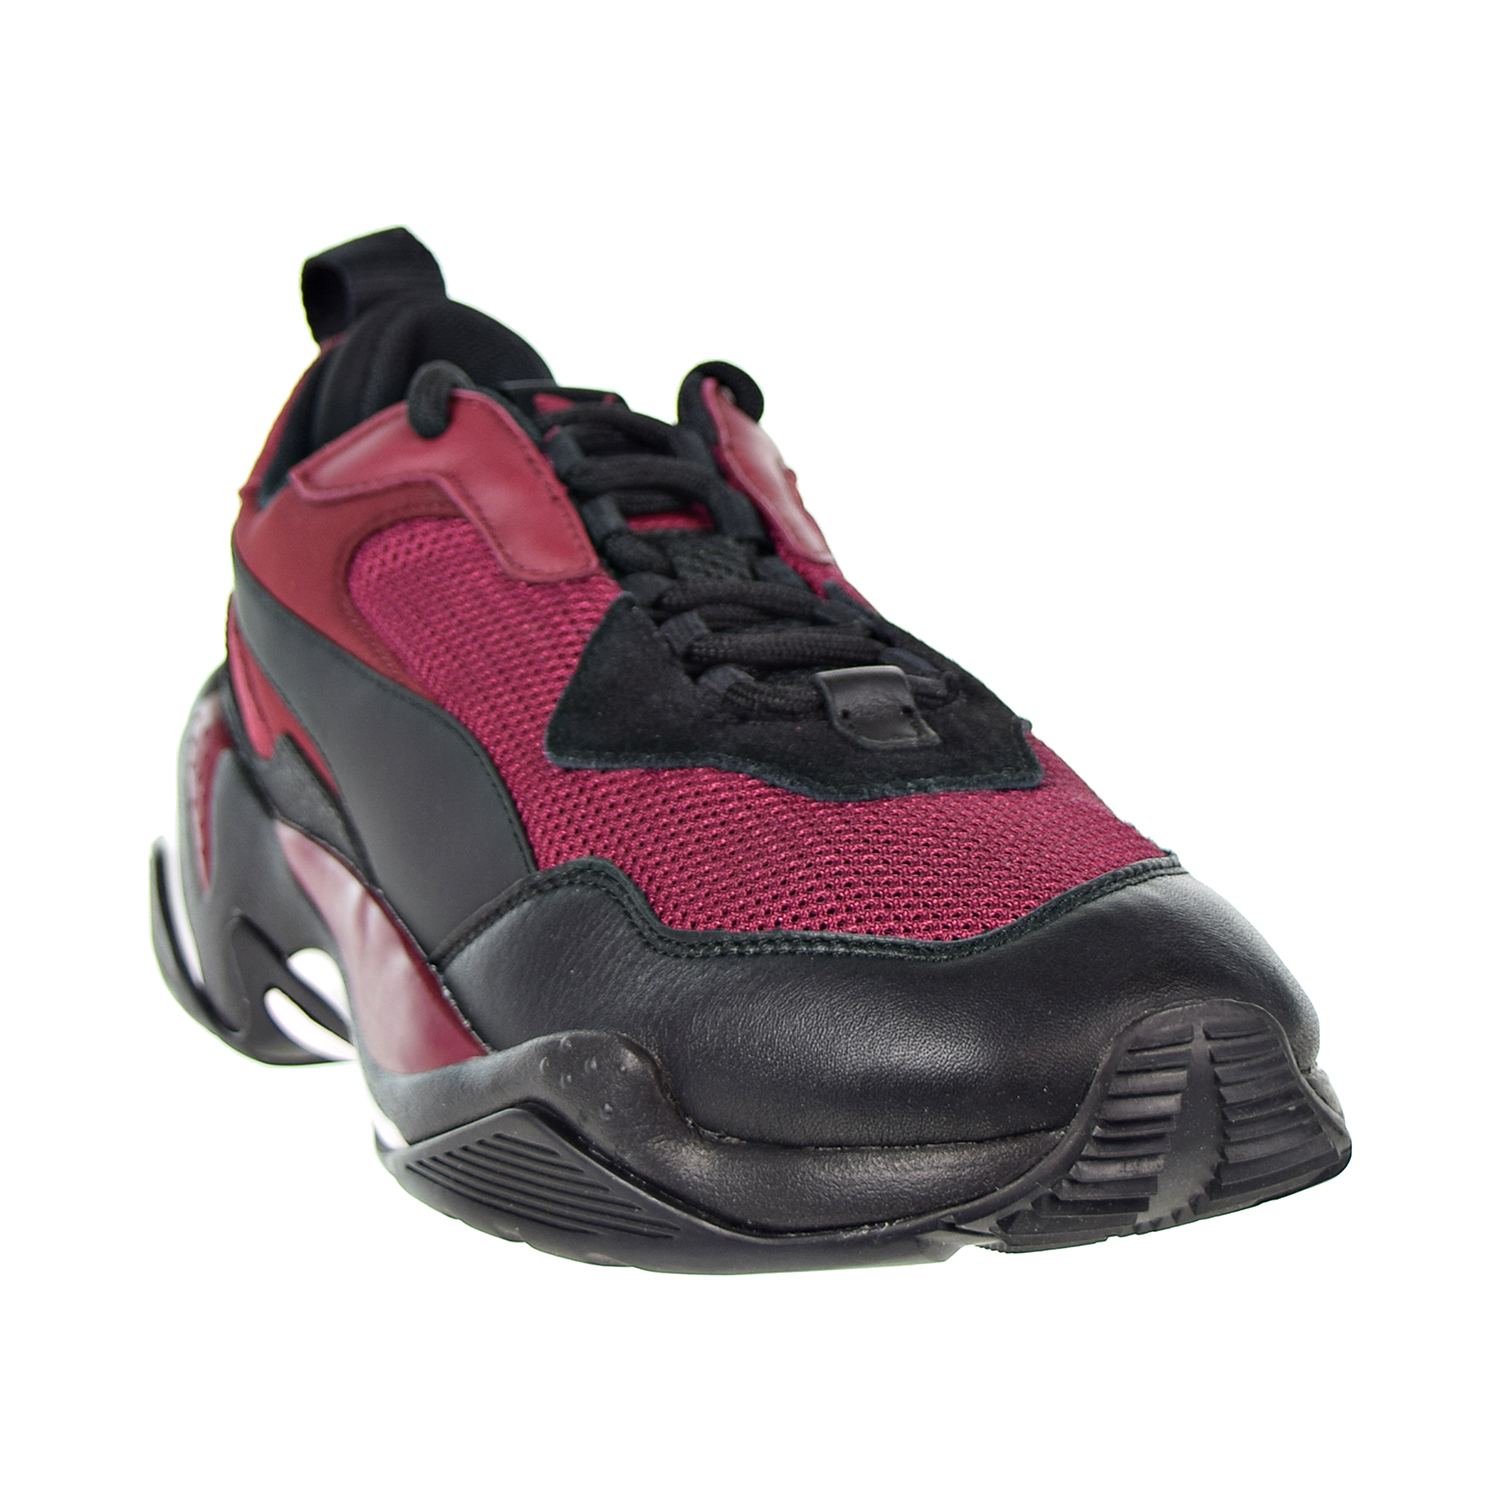 PUMA Thunder Spectra Shoes Rhododendron//Black//T Port 36751603 NEW!